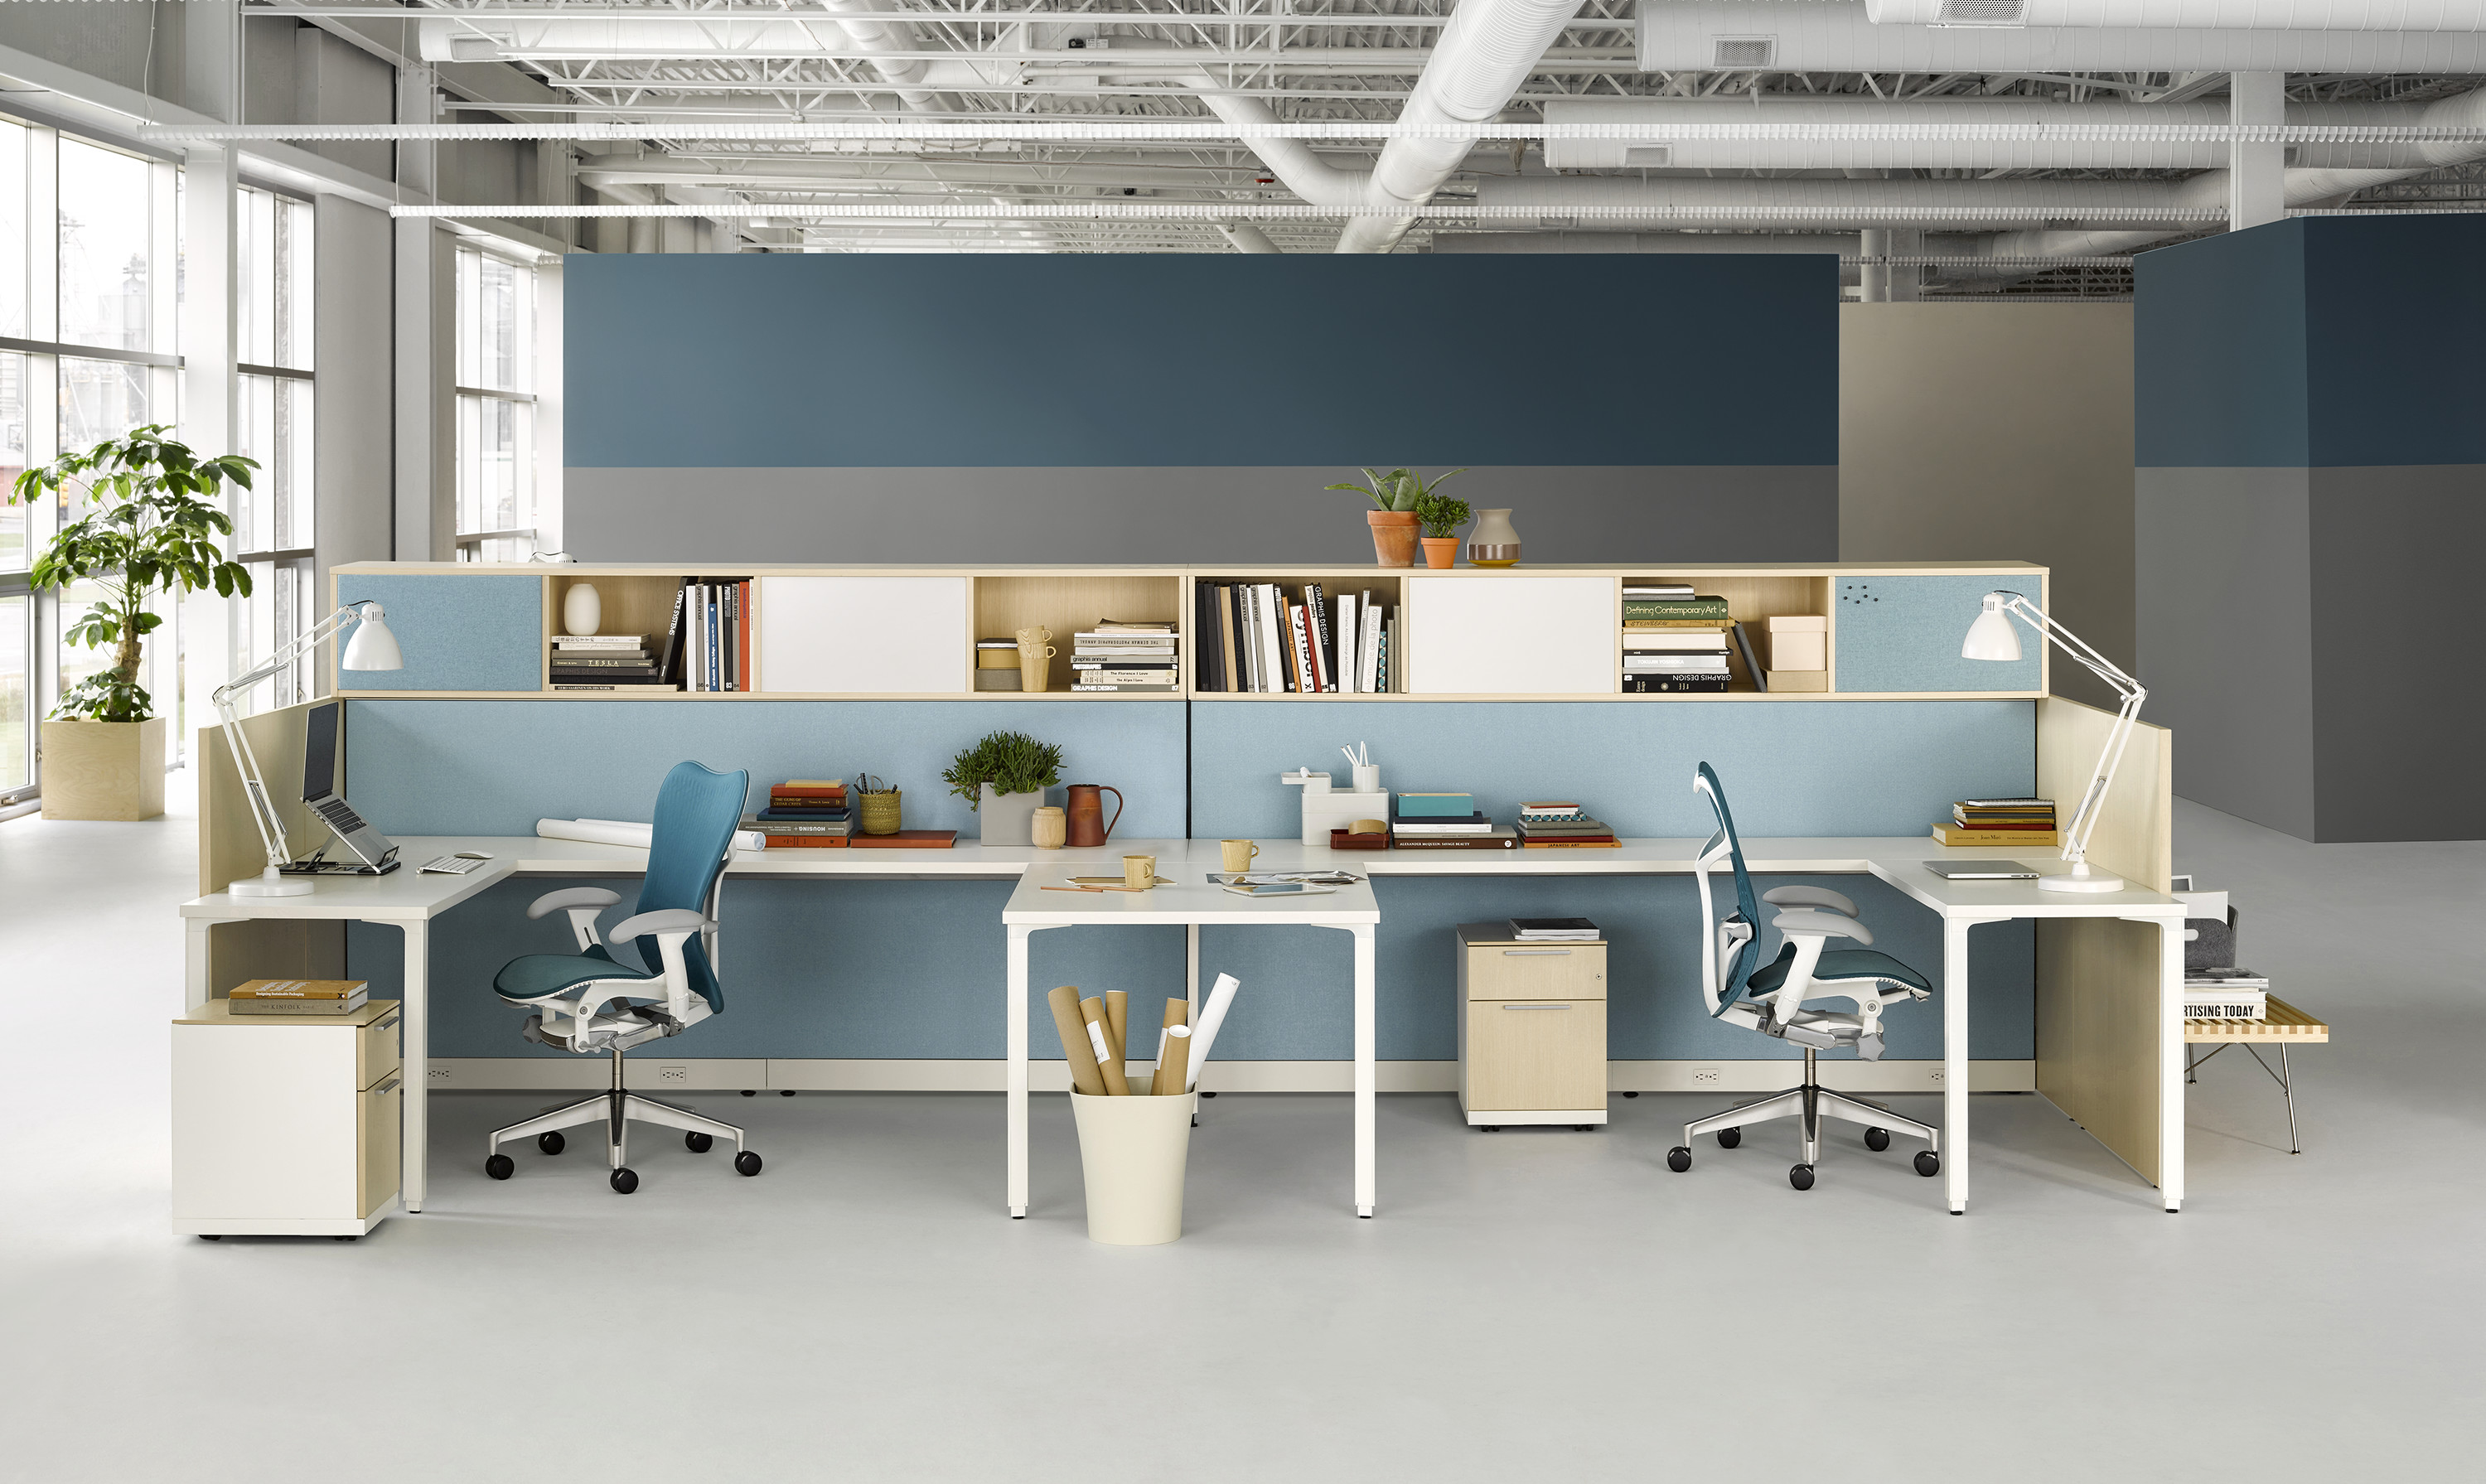 Office space design and planning where to start for Interior planner